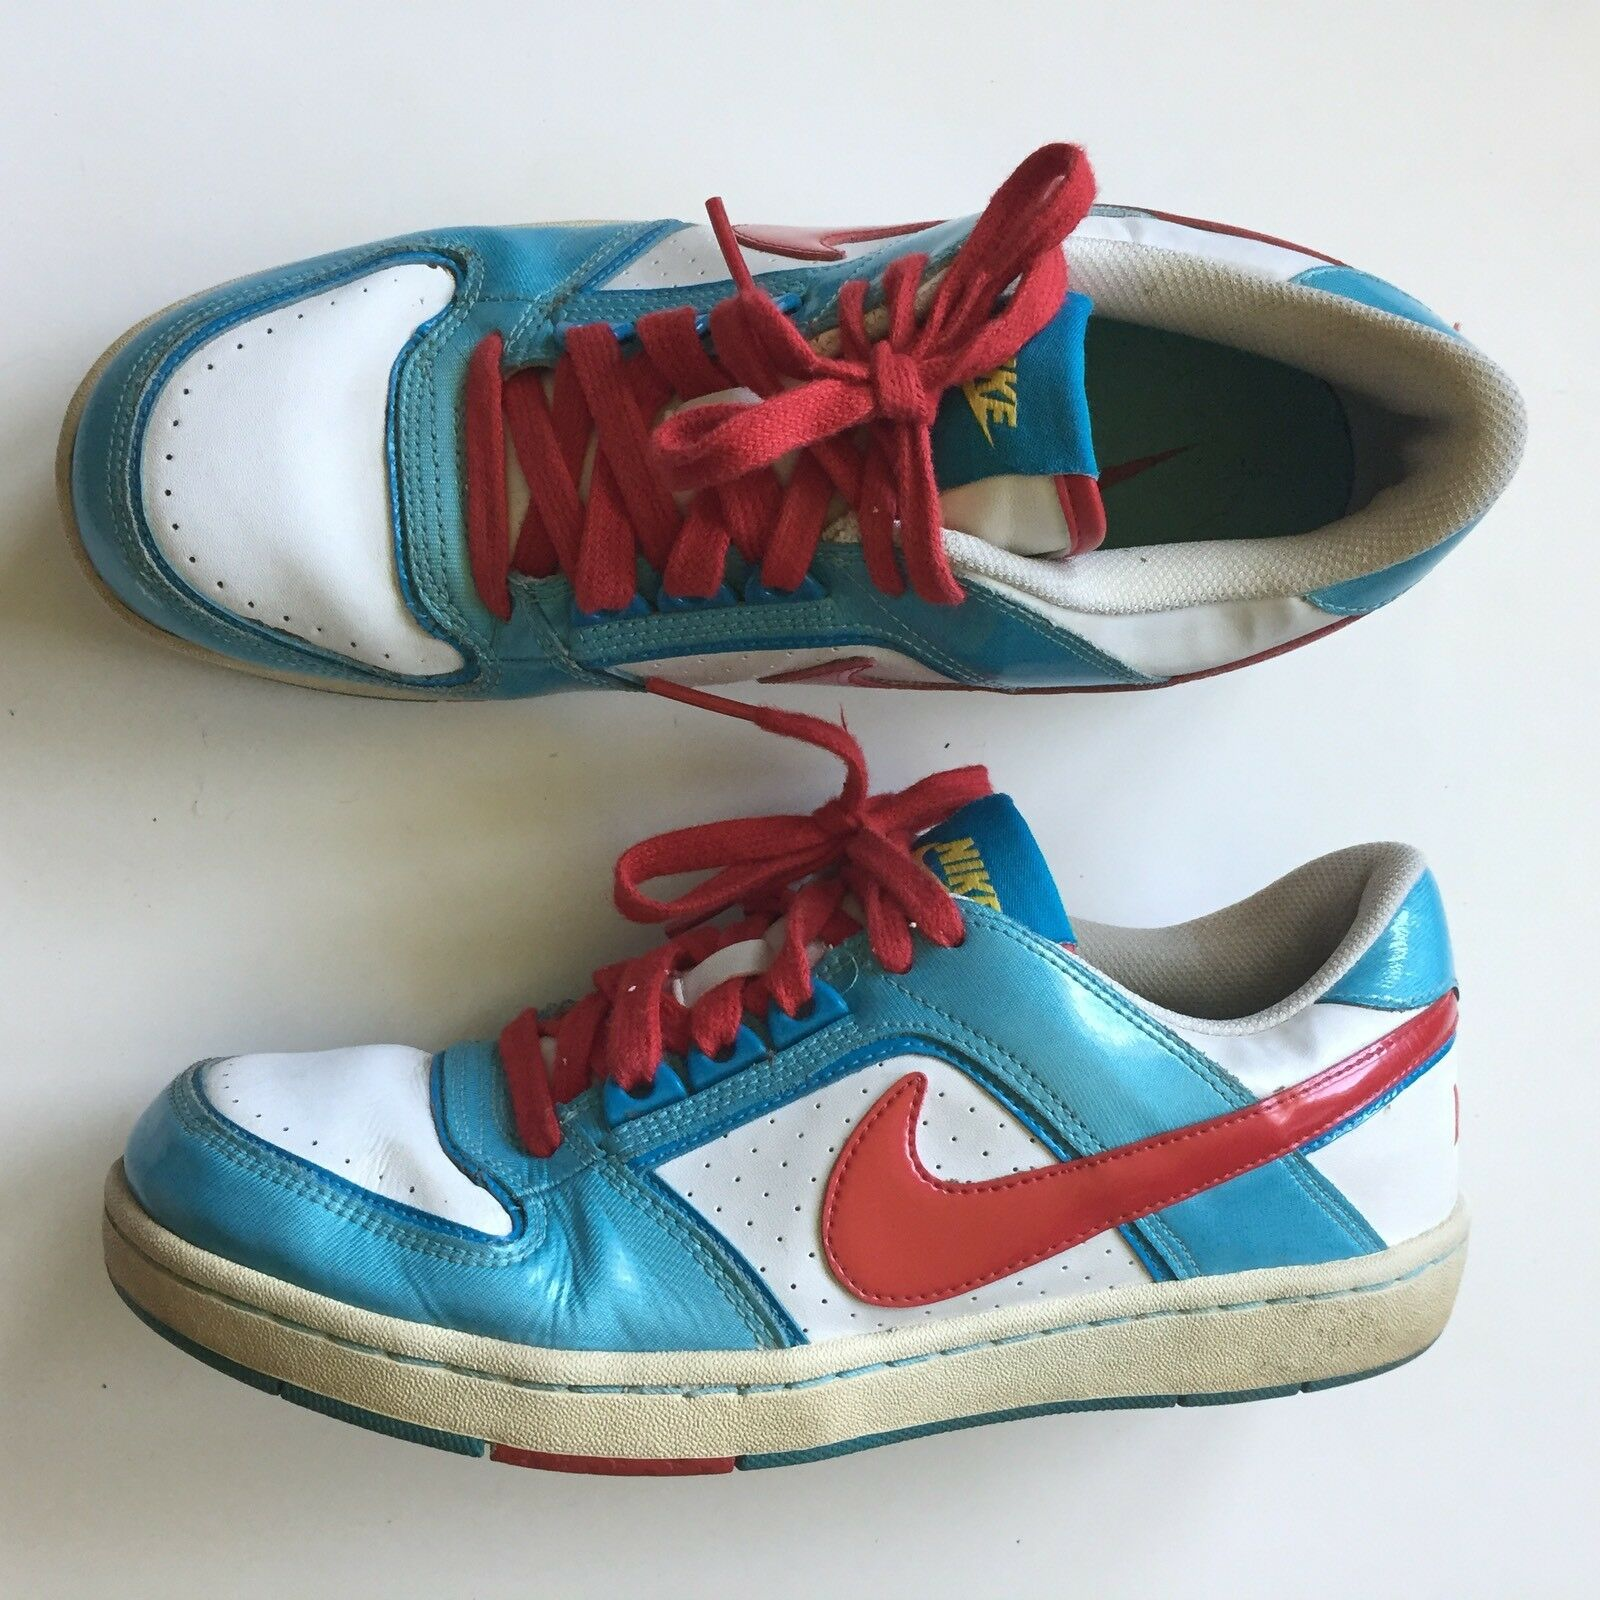 Nike Womens Athletic Sneakers 8.5 Red White Blue Retro 365950 Comfortable and good-looking